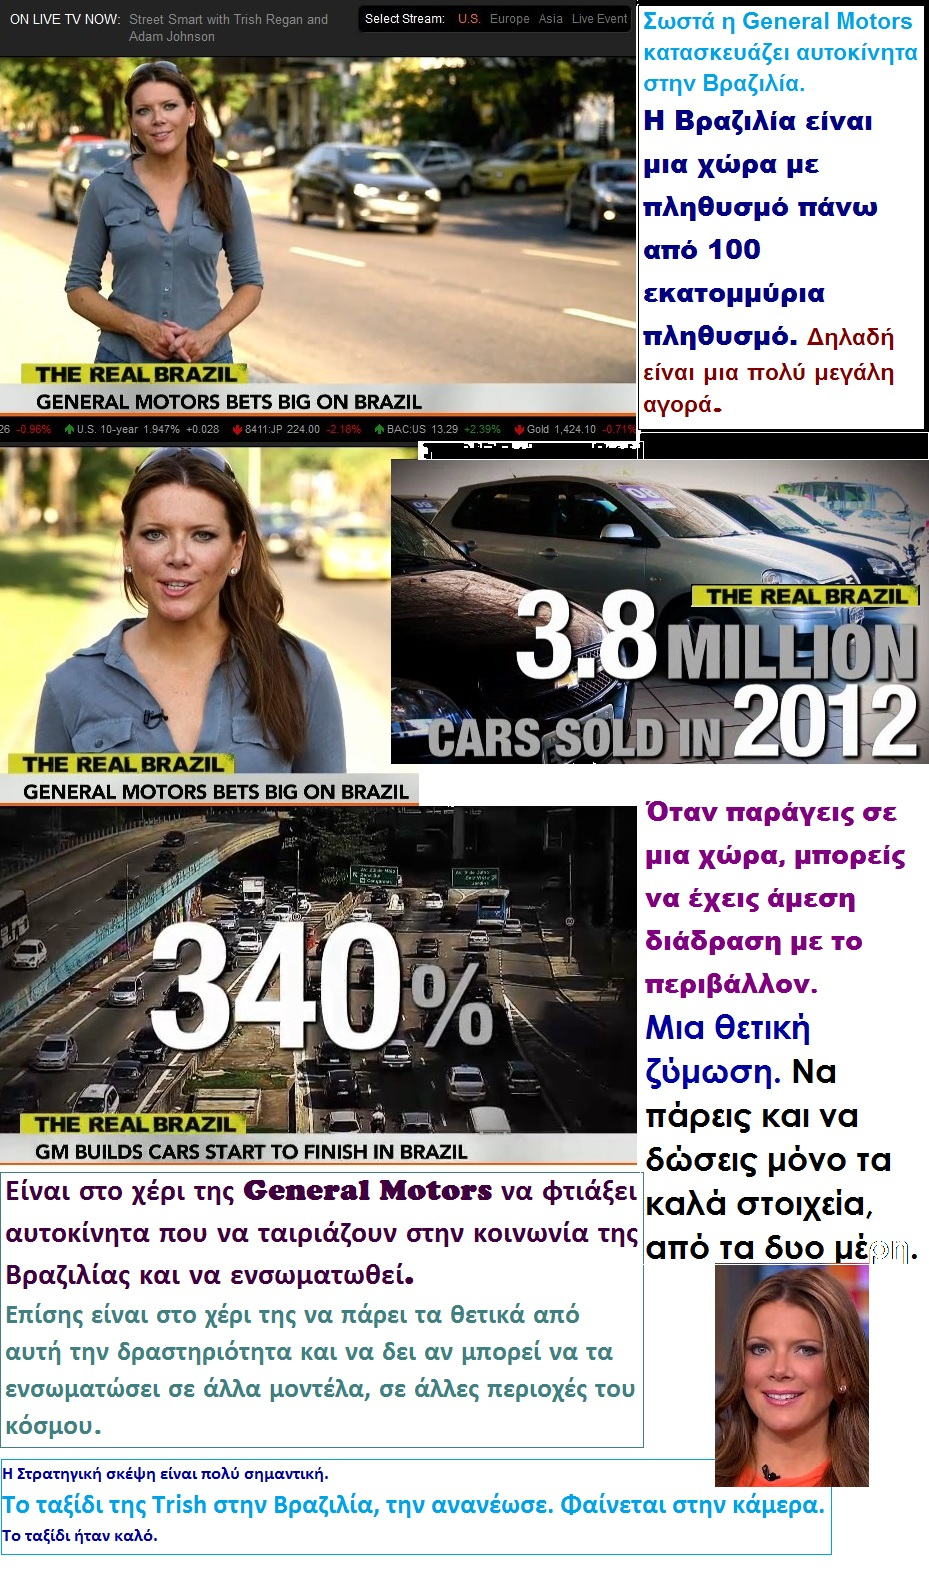 BLOOMBERG THE REAL BRAZIL GENERAL MOTORS BUILD 01 01 150413